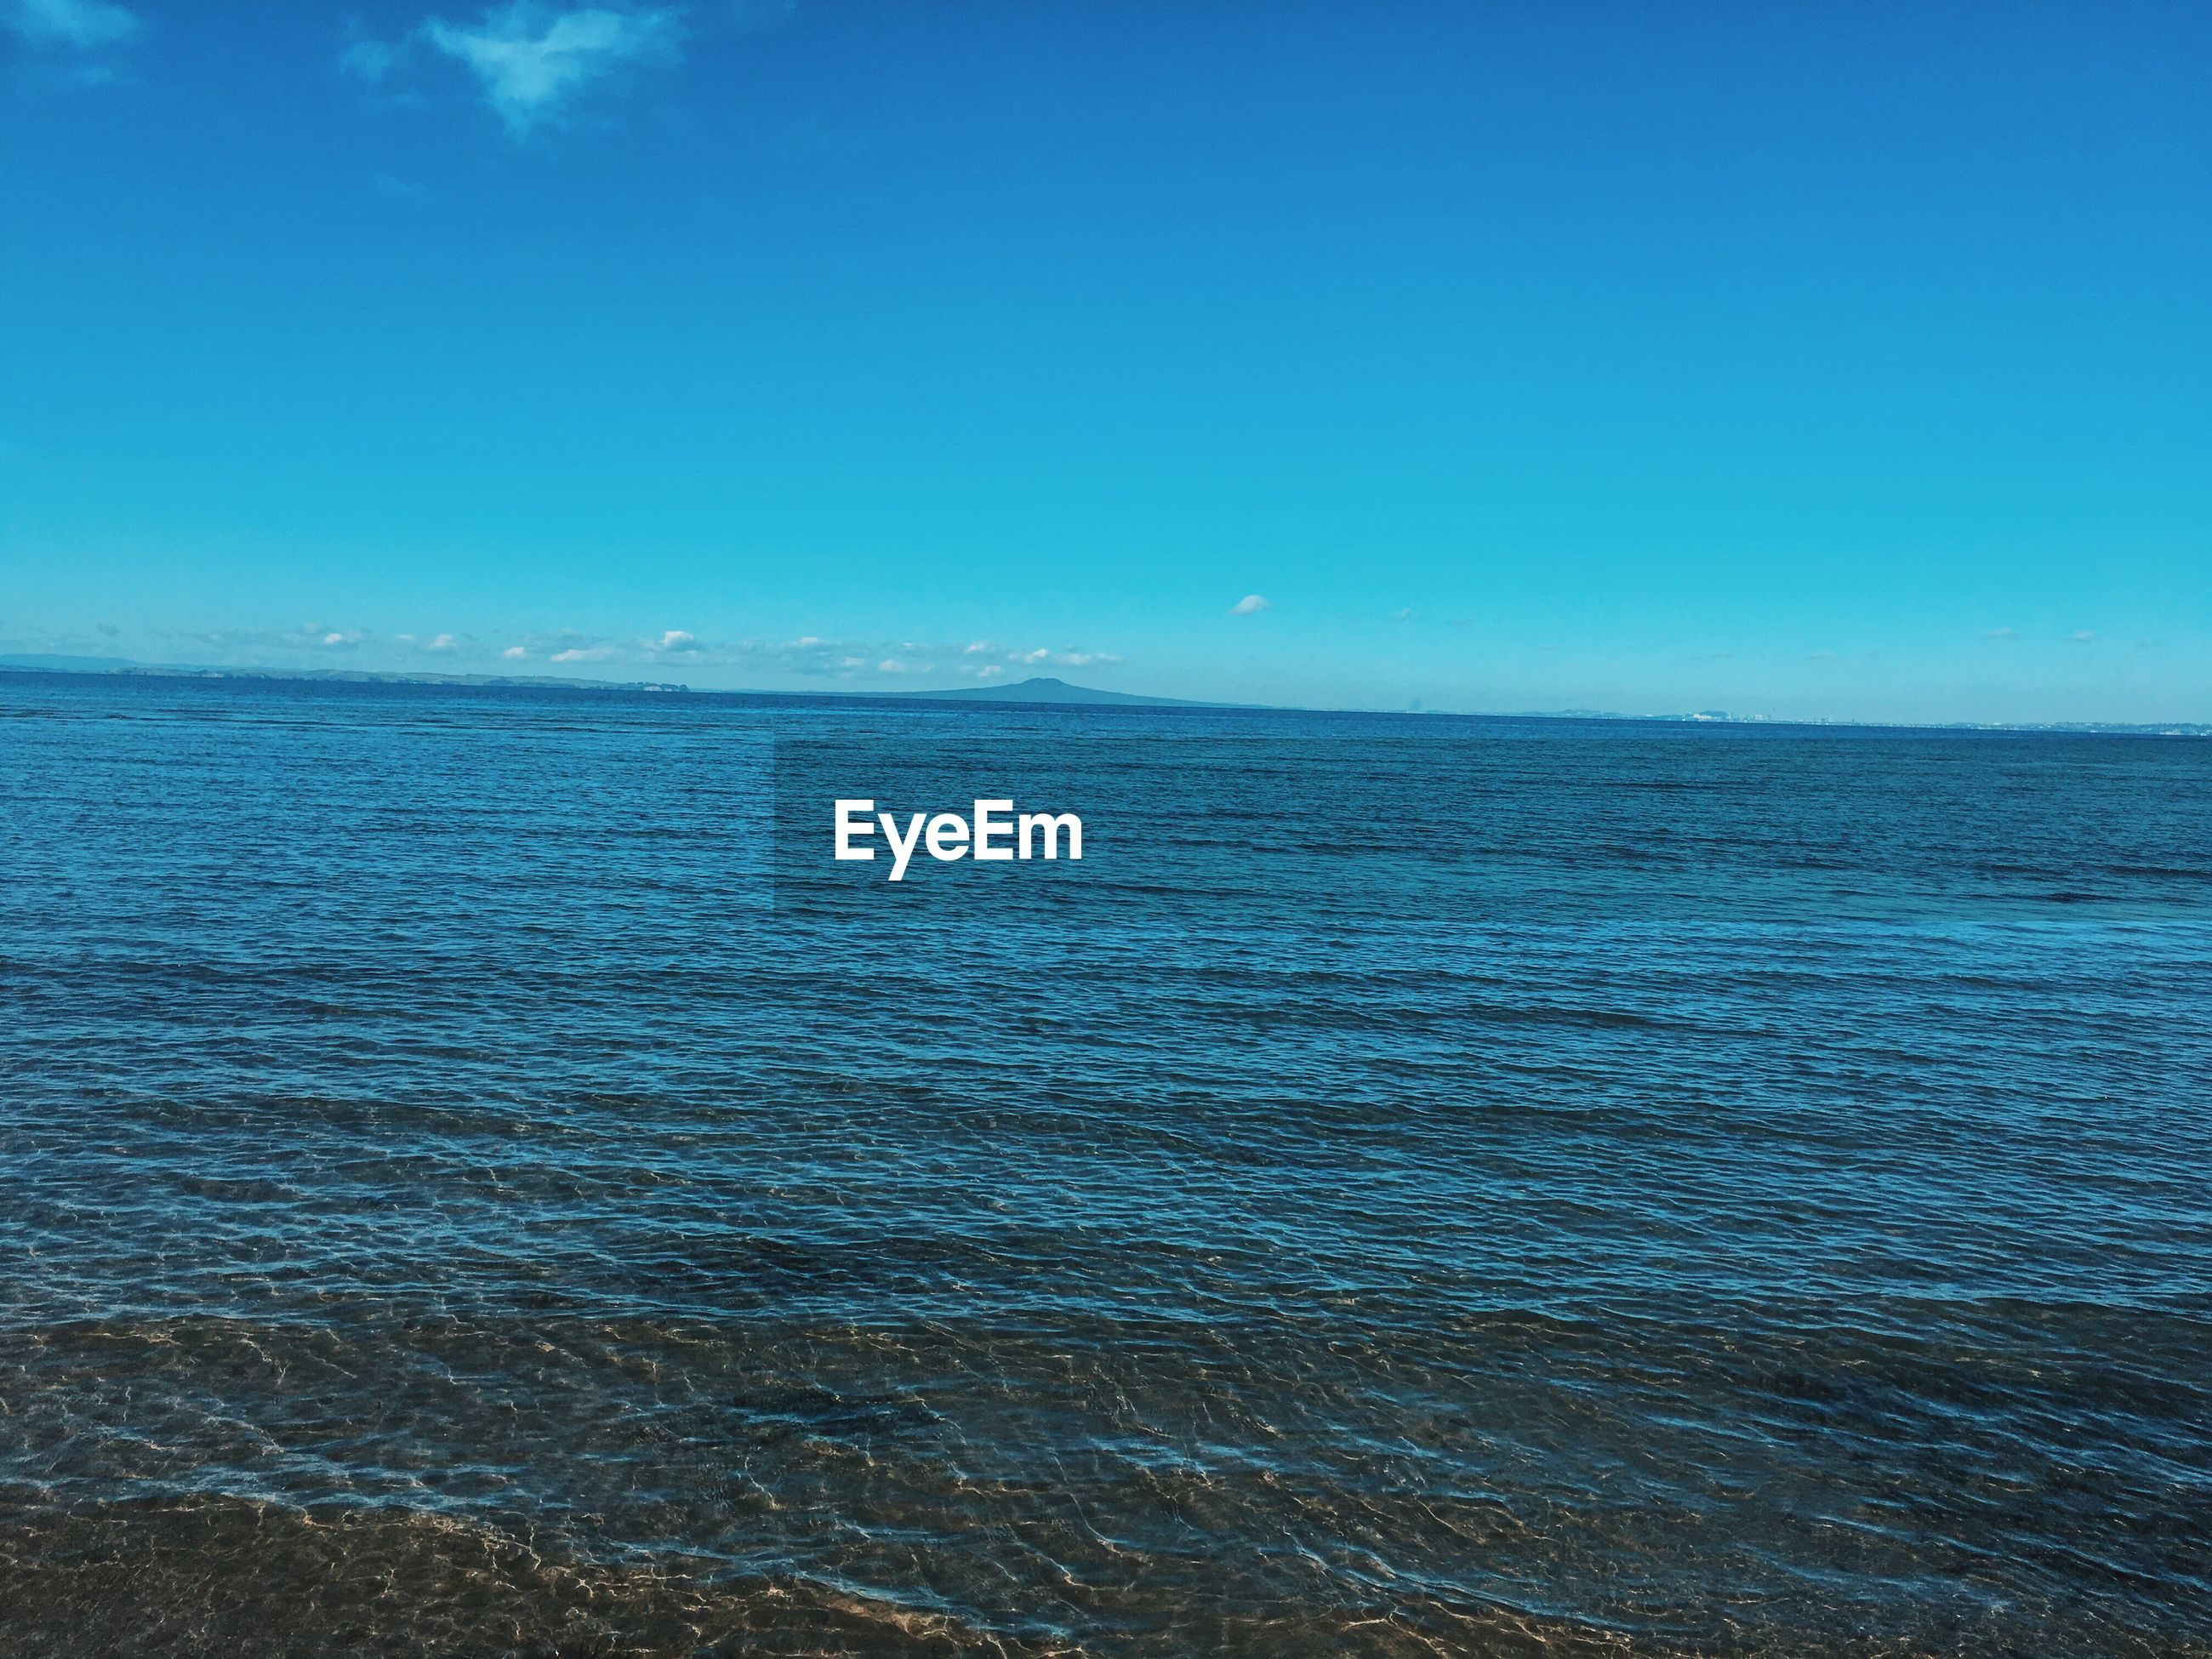 sea, water, blue, horizon over water, scenics, tranquil scene, tranquility, beauty in nature, seascape, idyllic, nature, rippled, waterfront, calm, non-urban scene, outdoors, sky, day, shore, remote, no people, ocean, majestic, wave